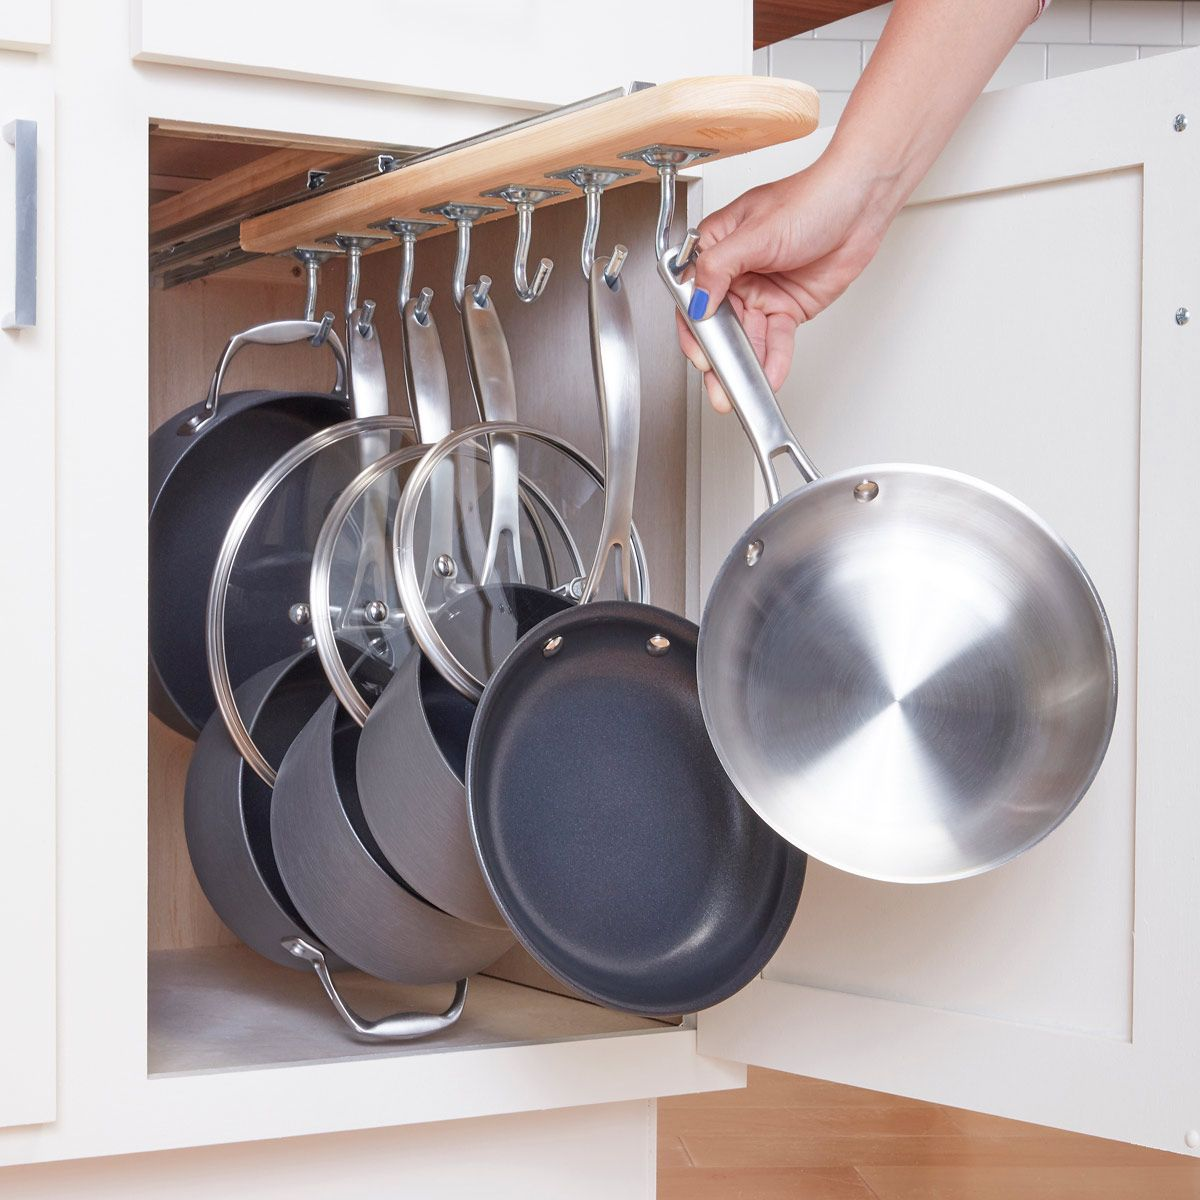 Kitchen Cabinet Storage Solutions: DIY Pot and Pan Pullout